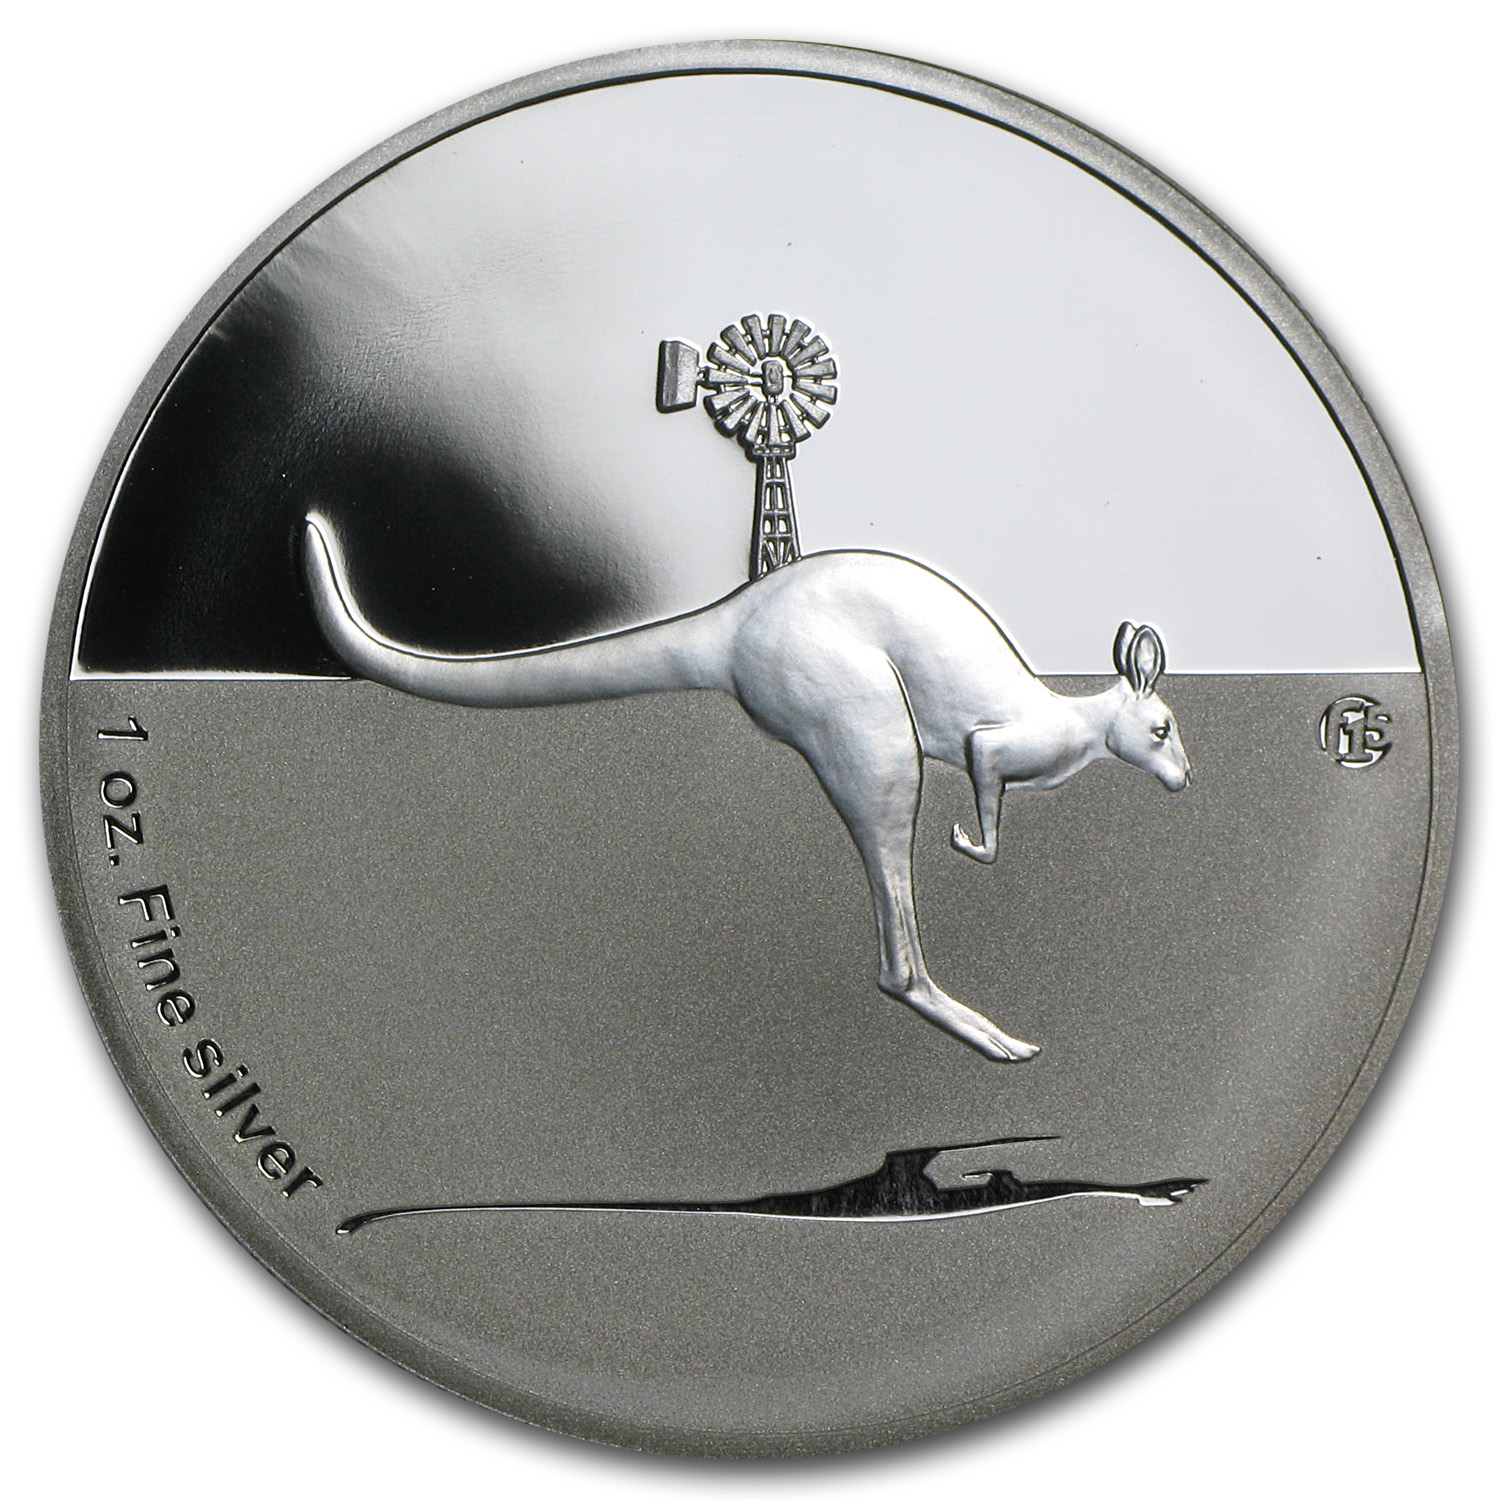 2013 Australia 1 oz Proof Silver Kangaroo in Outback (F15 Privy)